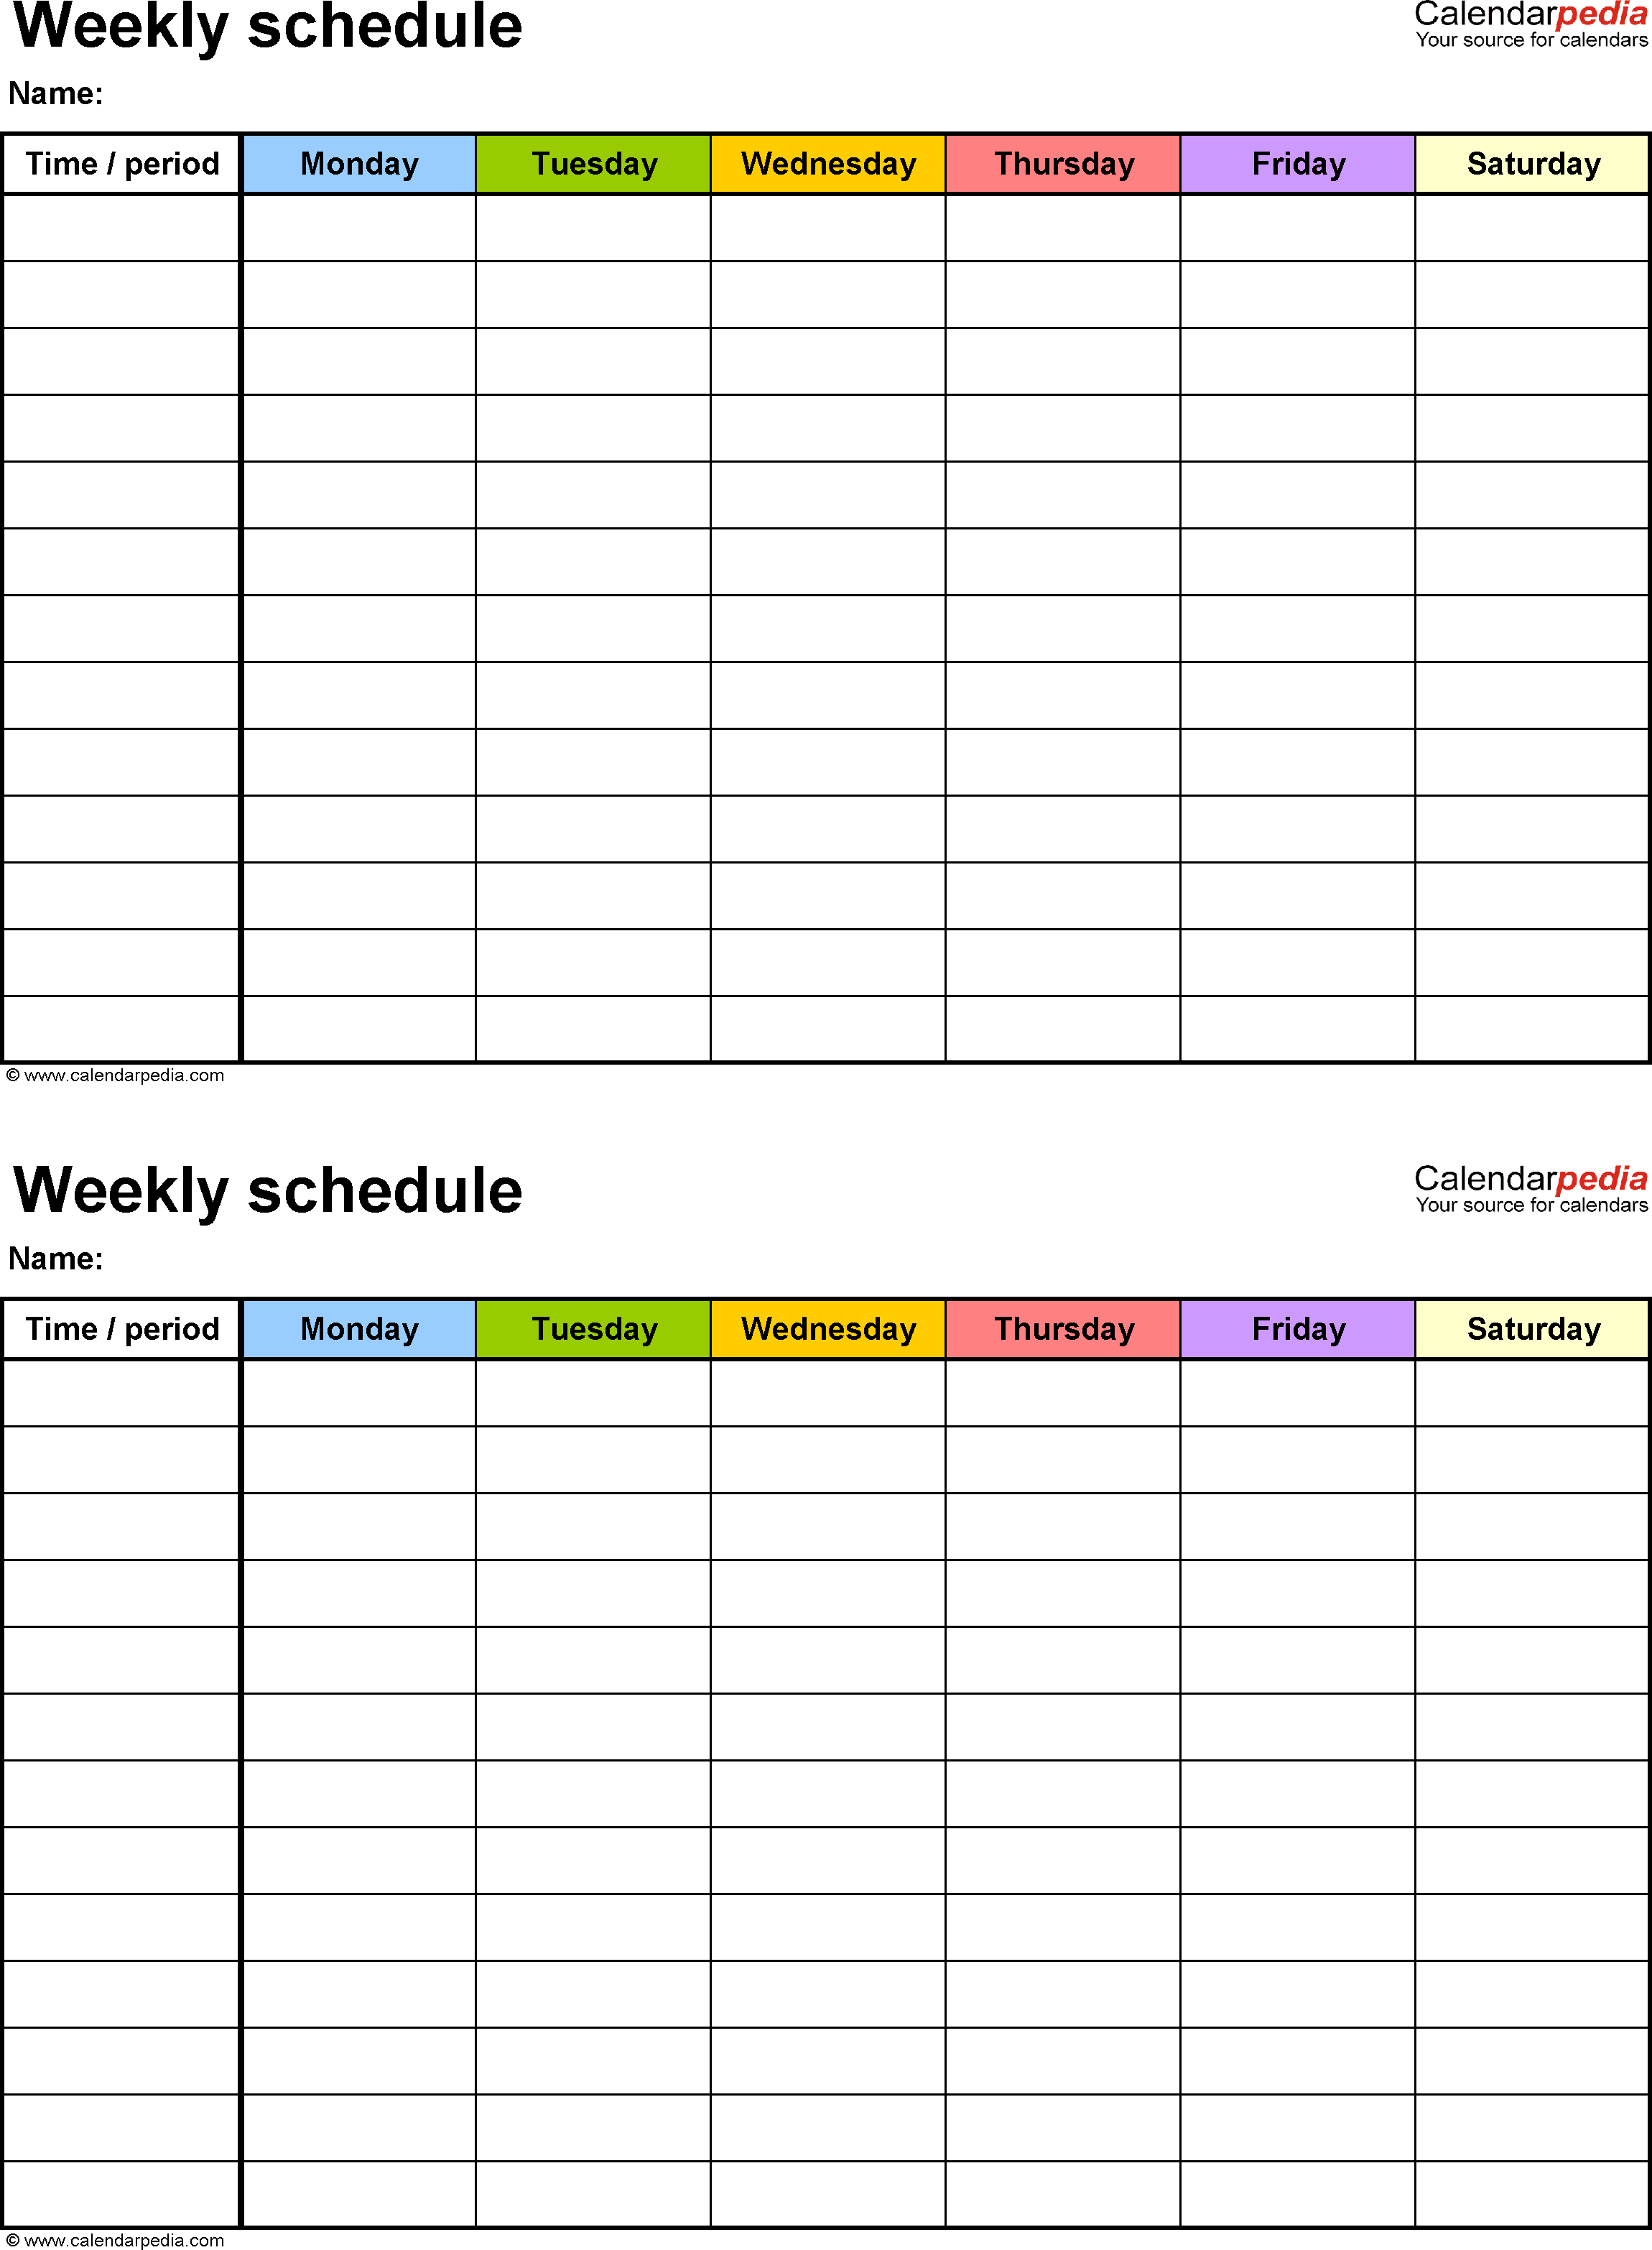 Free Weekly Schedule Templates For Excel - 18 Templates for Large Printable Daily Schedule Template